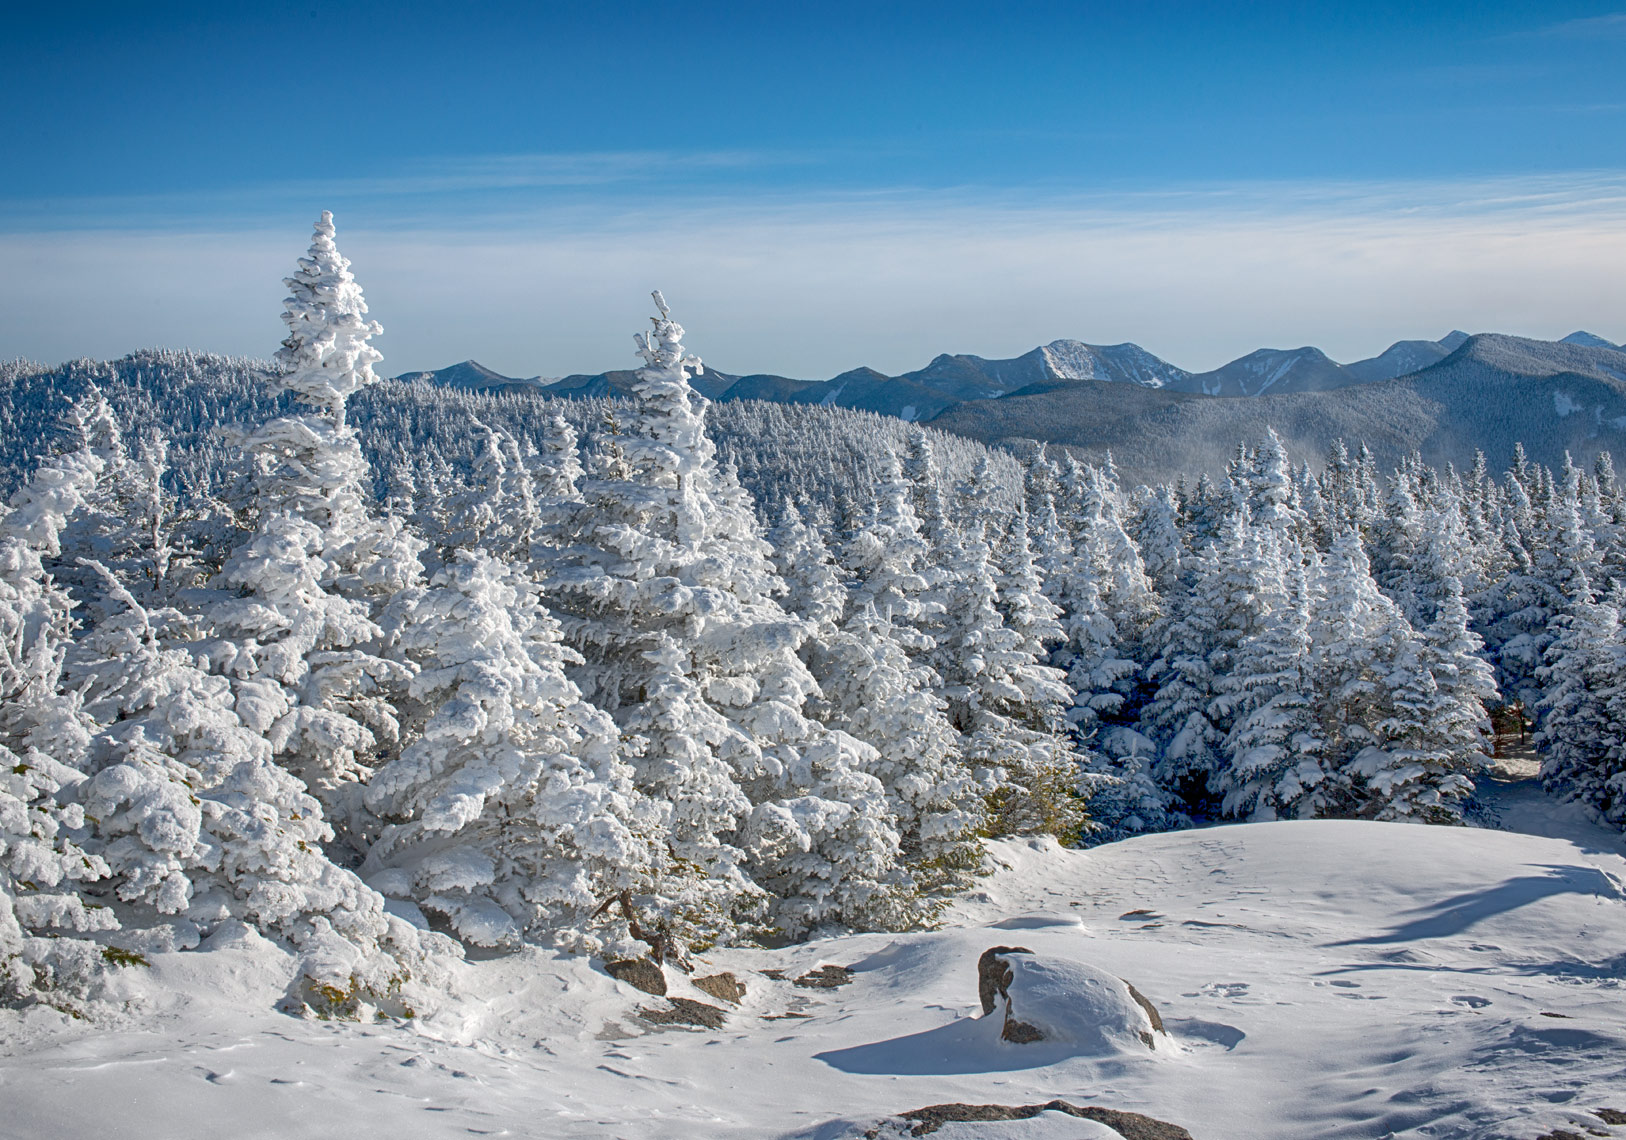 View from the Summit of Cascade Mountain in Winter, Adirondack Mountains, New York State